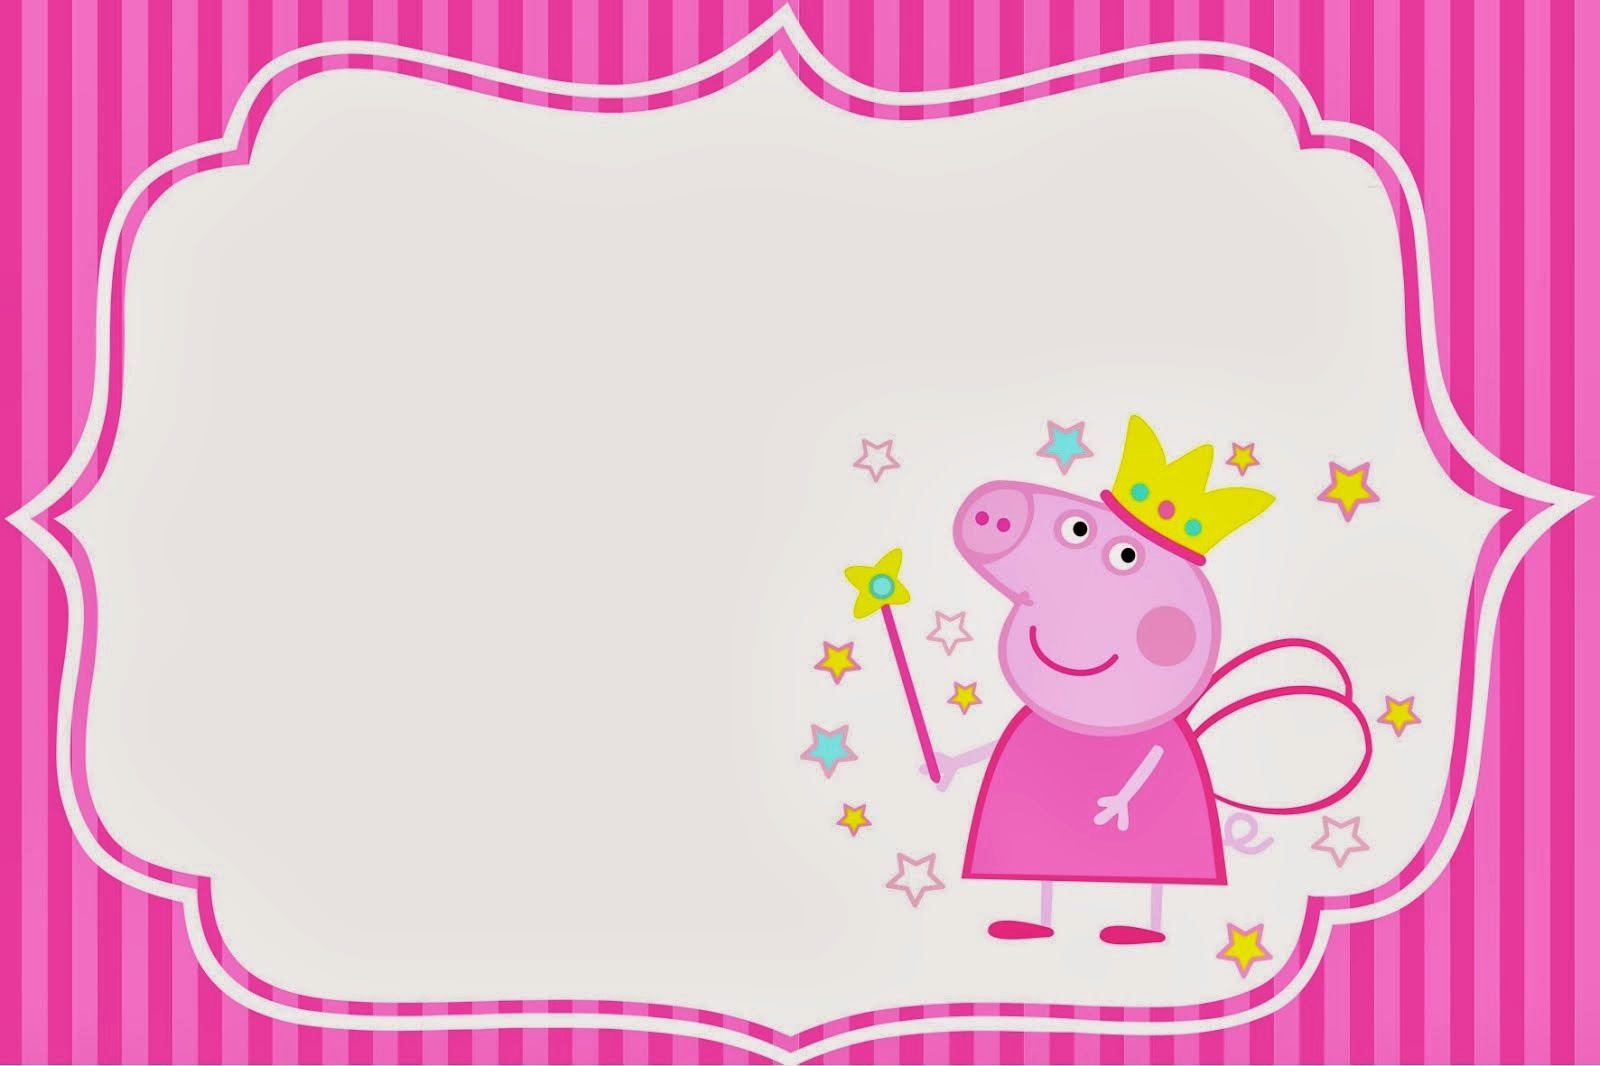 Peppa Pig Invitation Template Free Beautiful Peppa Pig Fairy Invitations and Free Party Printables